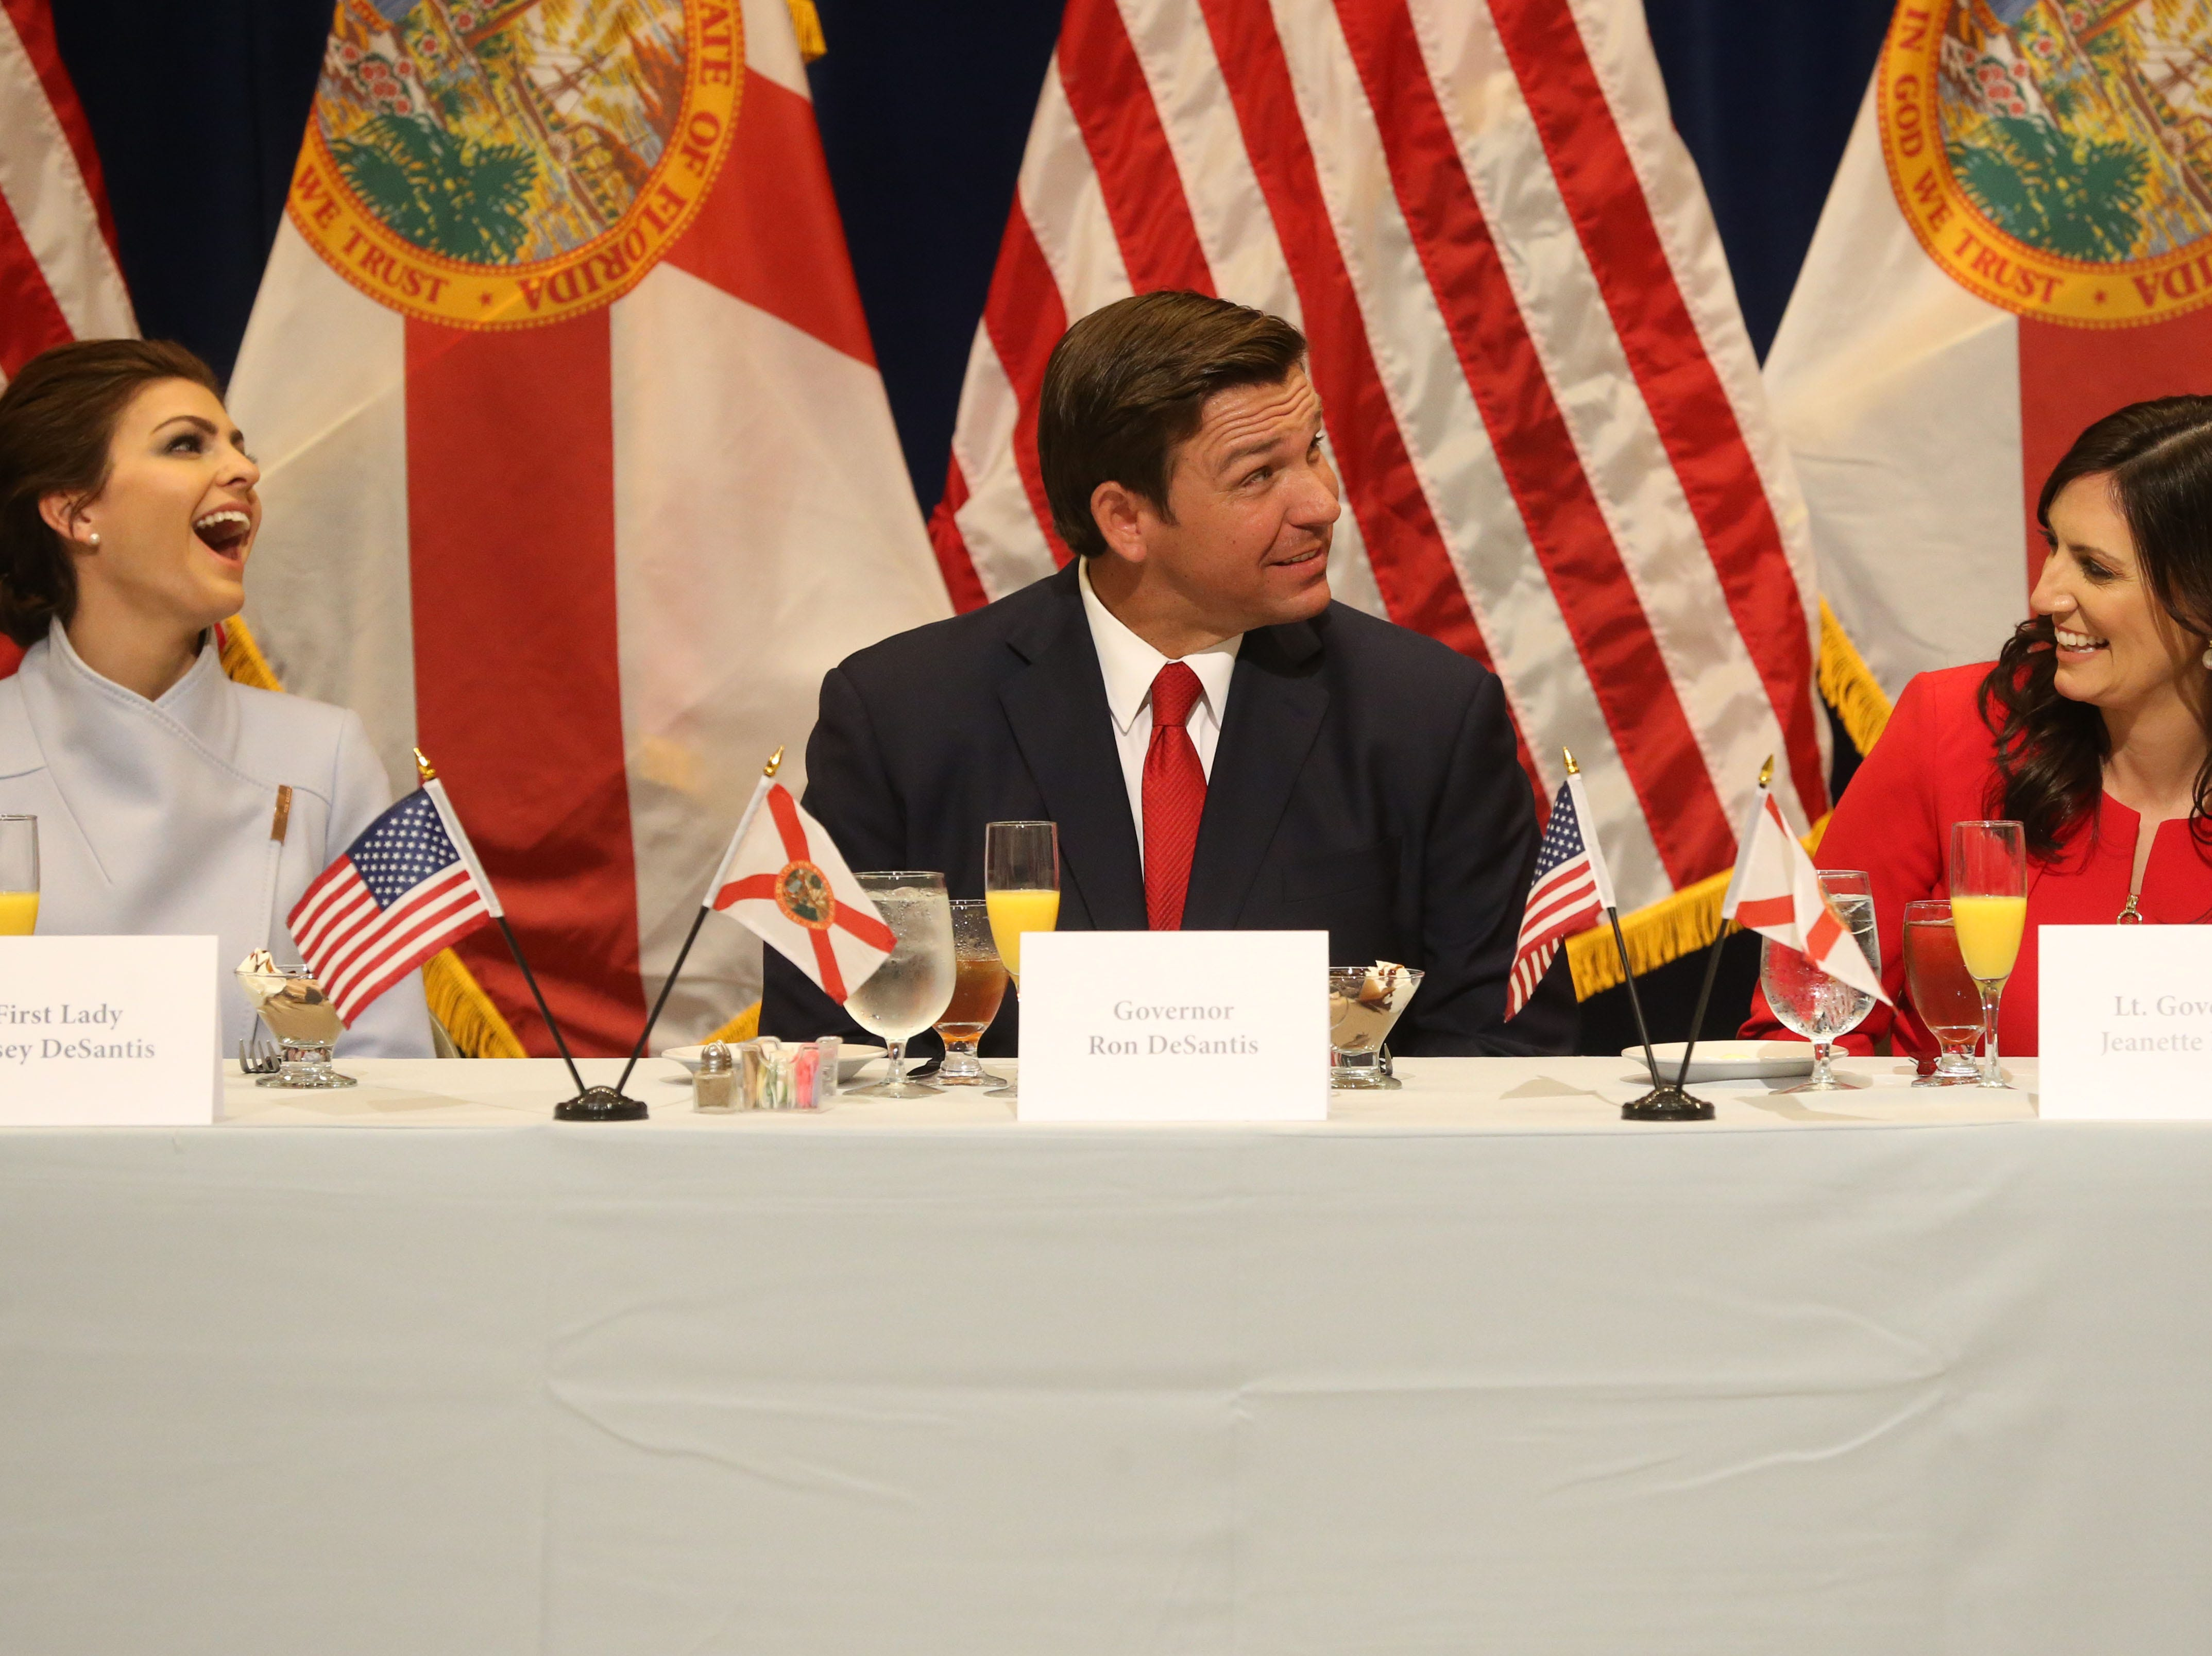 For the first time in Inaugural history, Gov. Ron DeSantis addresses FloridaÕs Legislative leaders and Cabinet officials. DeSantis discusses his plans to work with our stateÕs elected leaders to achieve a Bold Vision for a Brighter Future, Tuesday, Jan. 8, 2019. First lady Casey DeSantis, left, Gov. Ron DeSantis, and Lt. Gov. Jeanette Nunez burst out in laughter during a toast given by Senate President Bill Galvano.